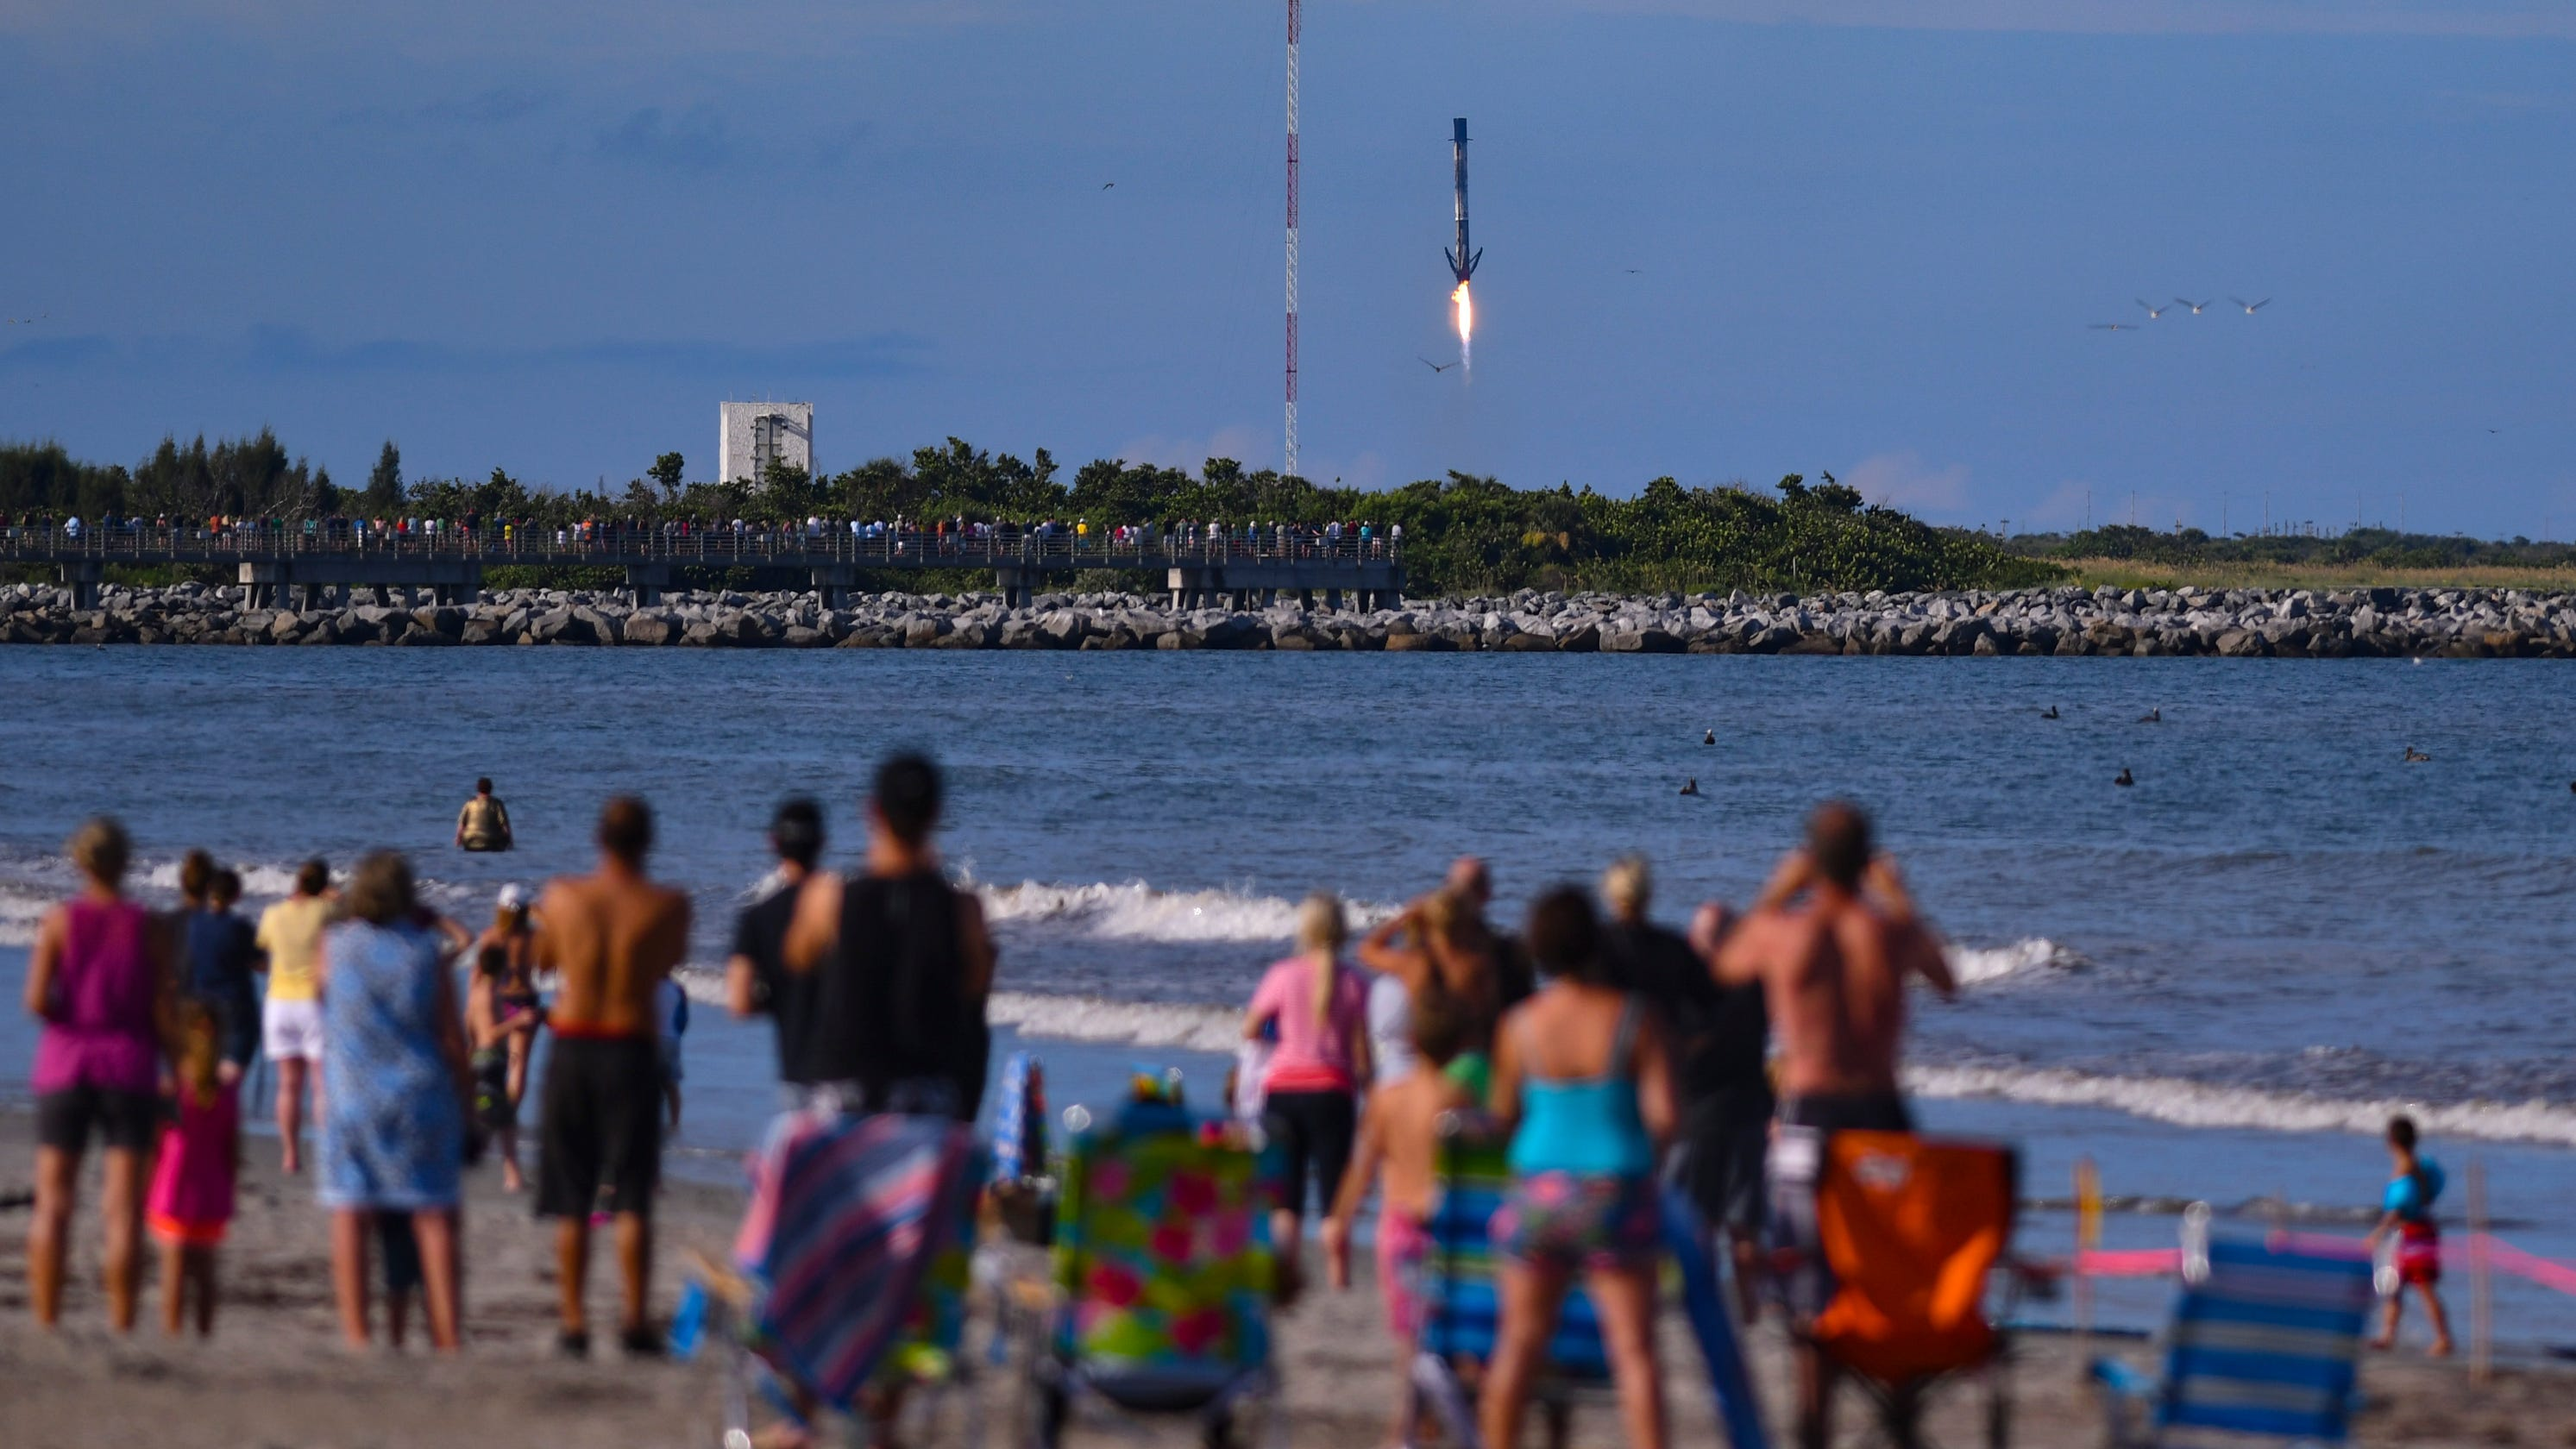 Last-minute opening allows SpaceX to launch Dragon ...